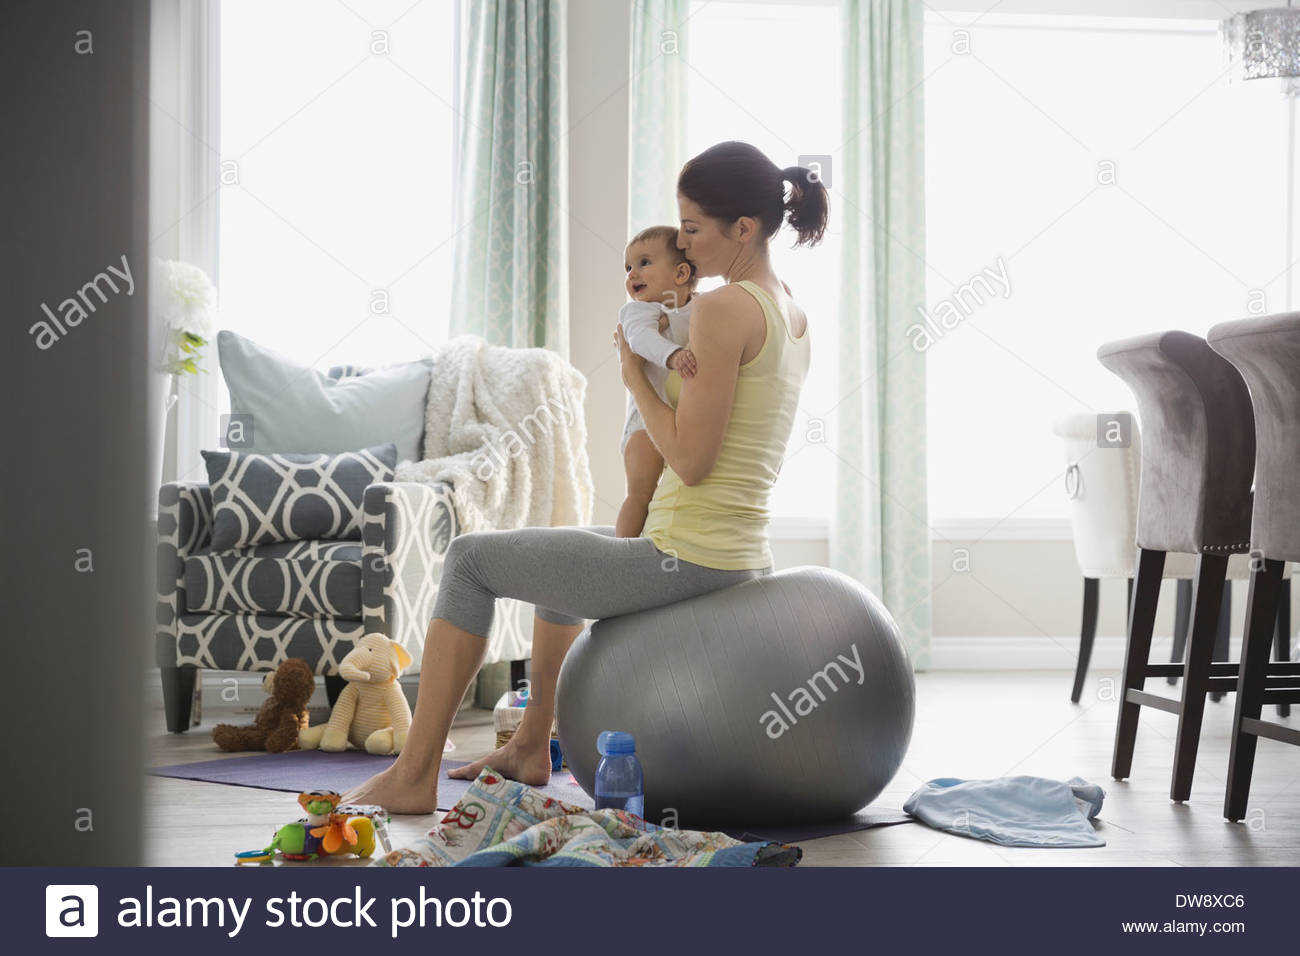 Mother with baby girl balancing on exercise ball - Stock Image